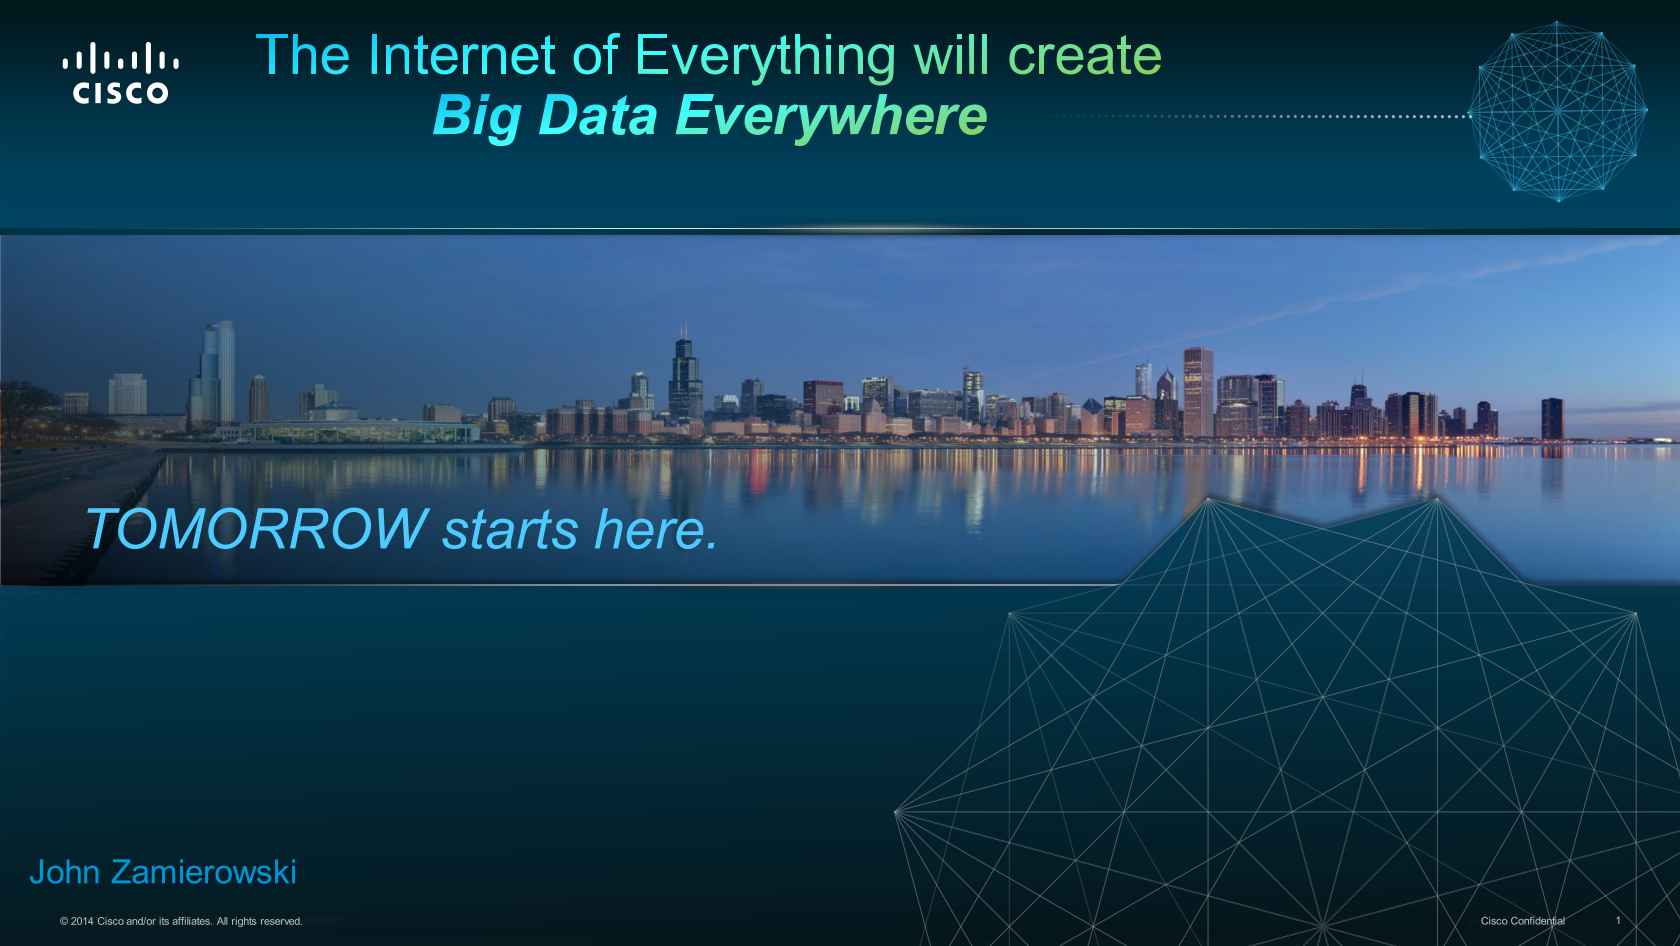 The Business Value Of Big Data Driven By The Internet Of Everything